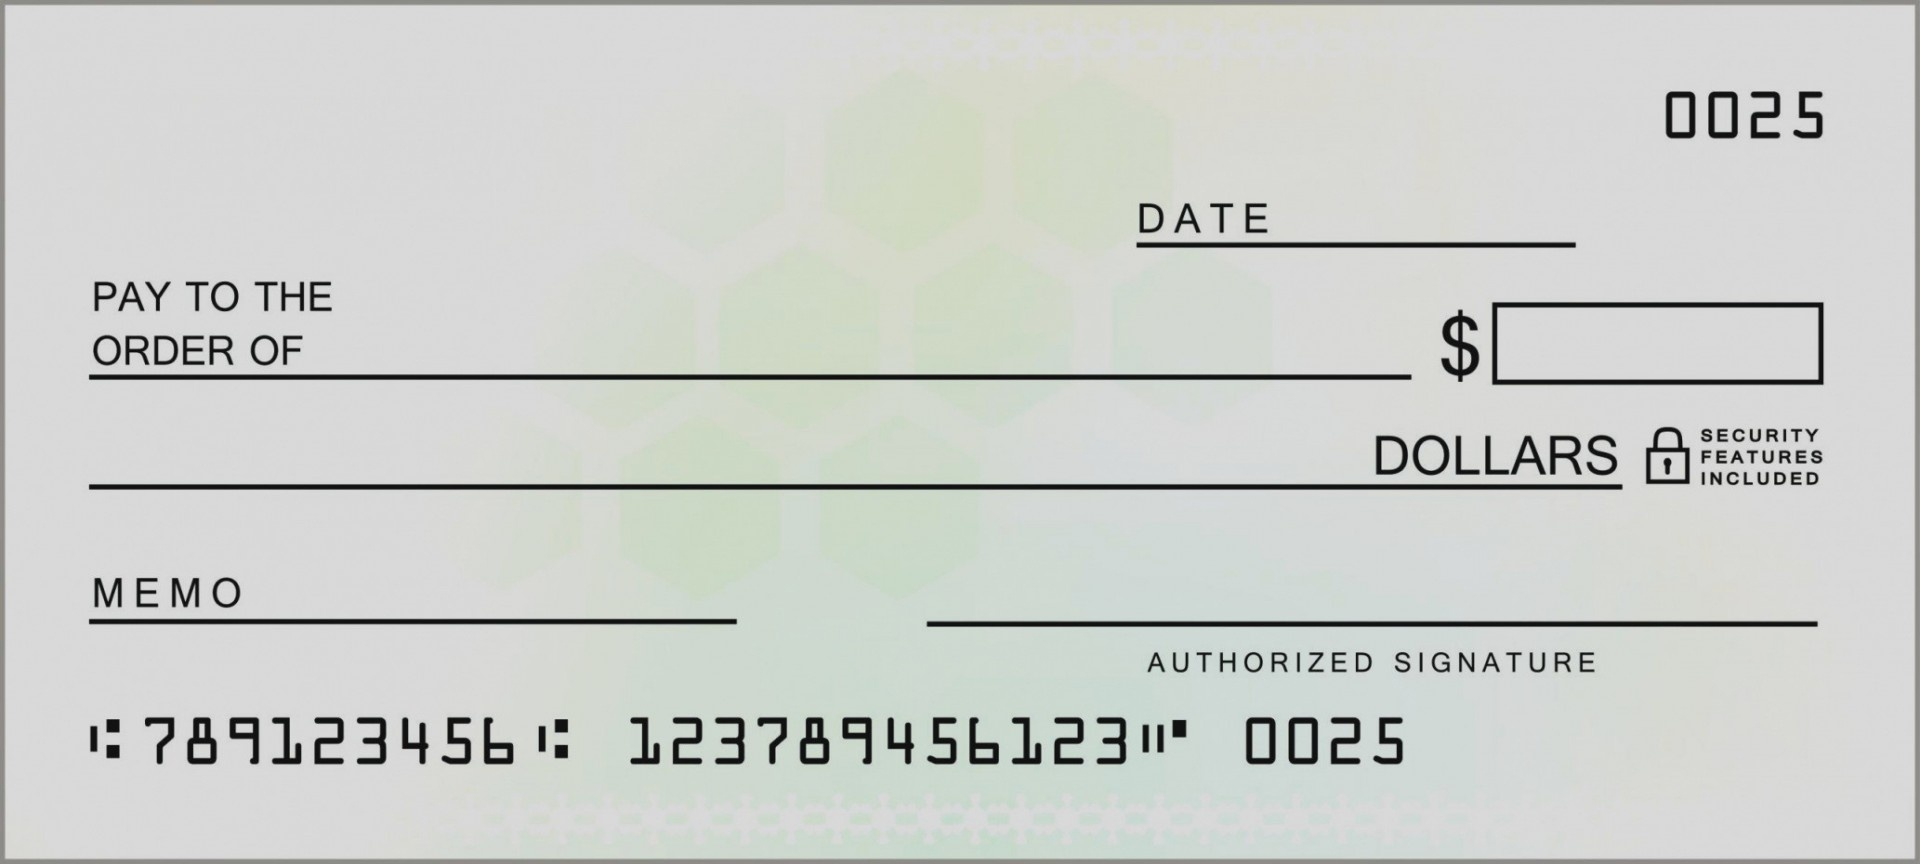 021 Fake Blank Check Template Cheque Free Awesome Payroll Templates - Free Printable Blank Checks